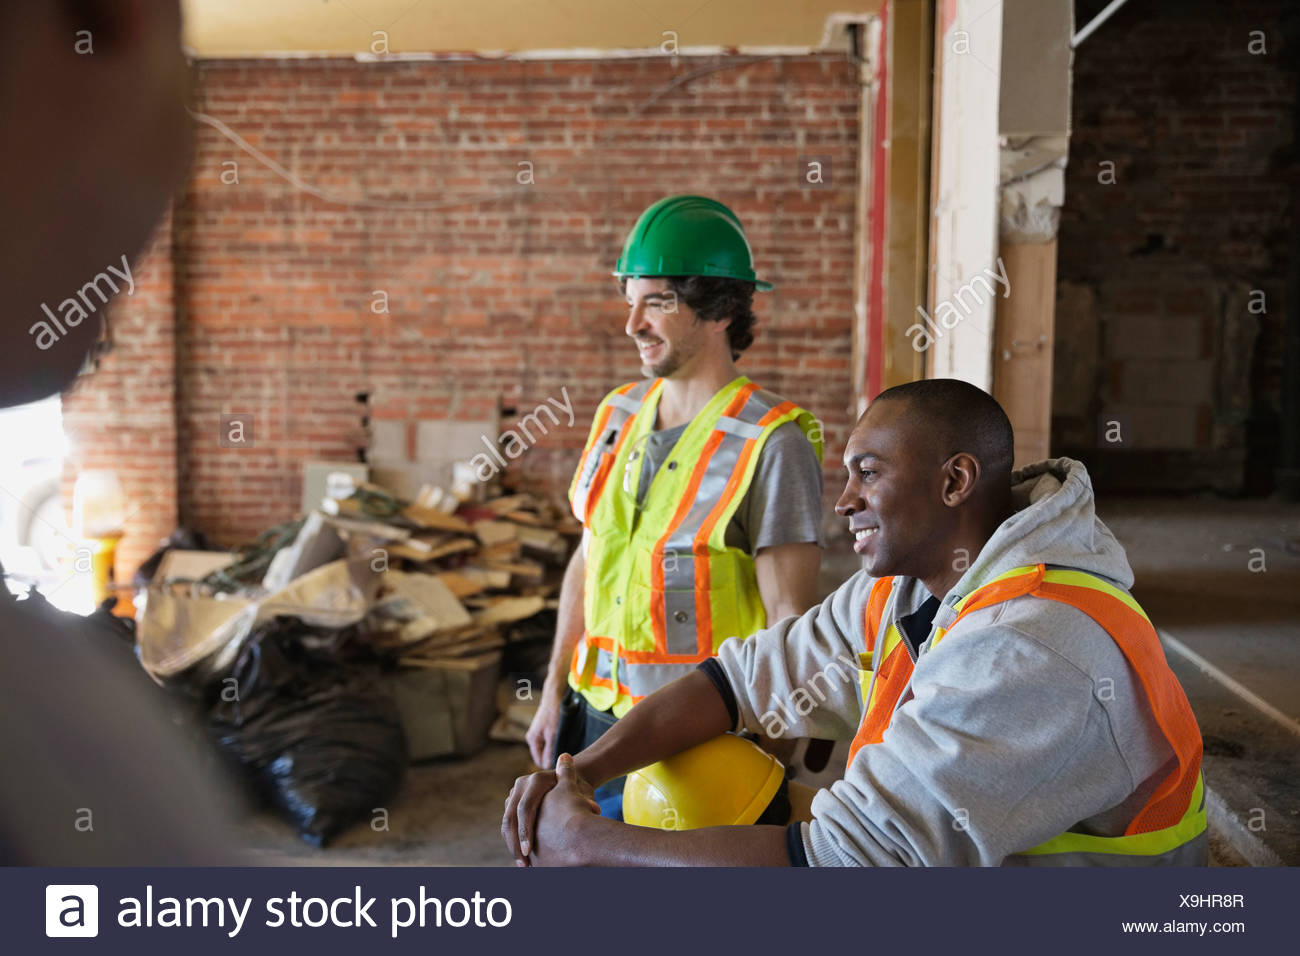 Tradesmen taking break at construction site - Stock Image